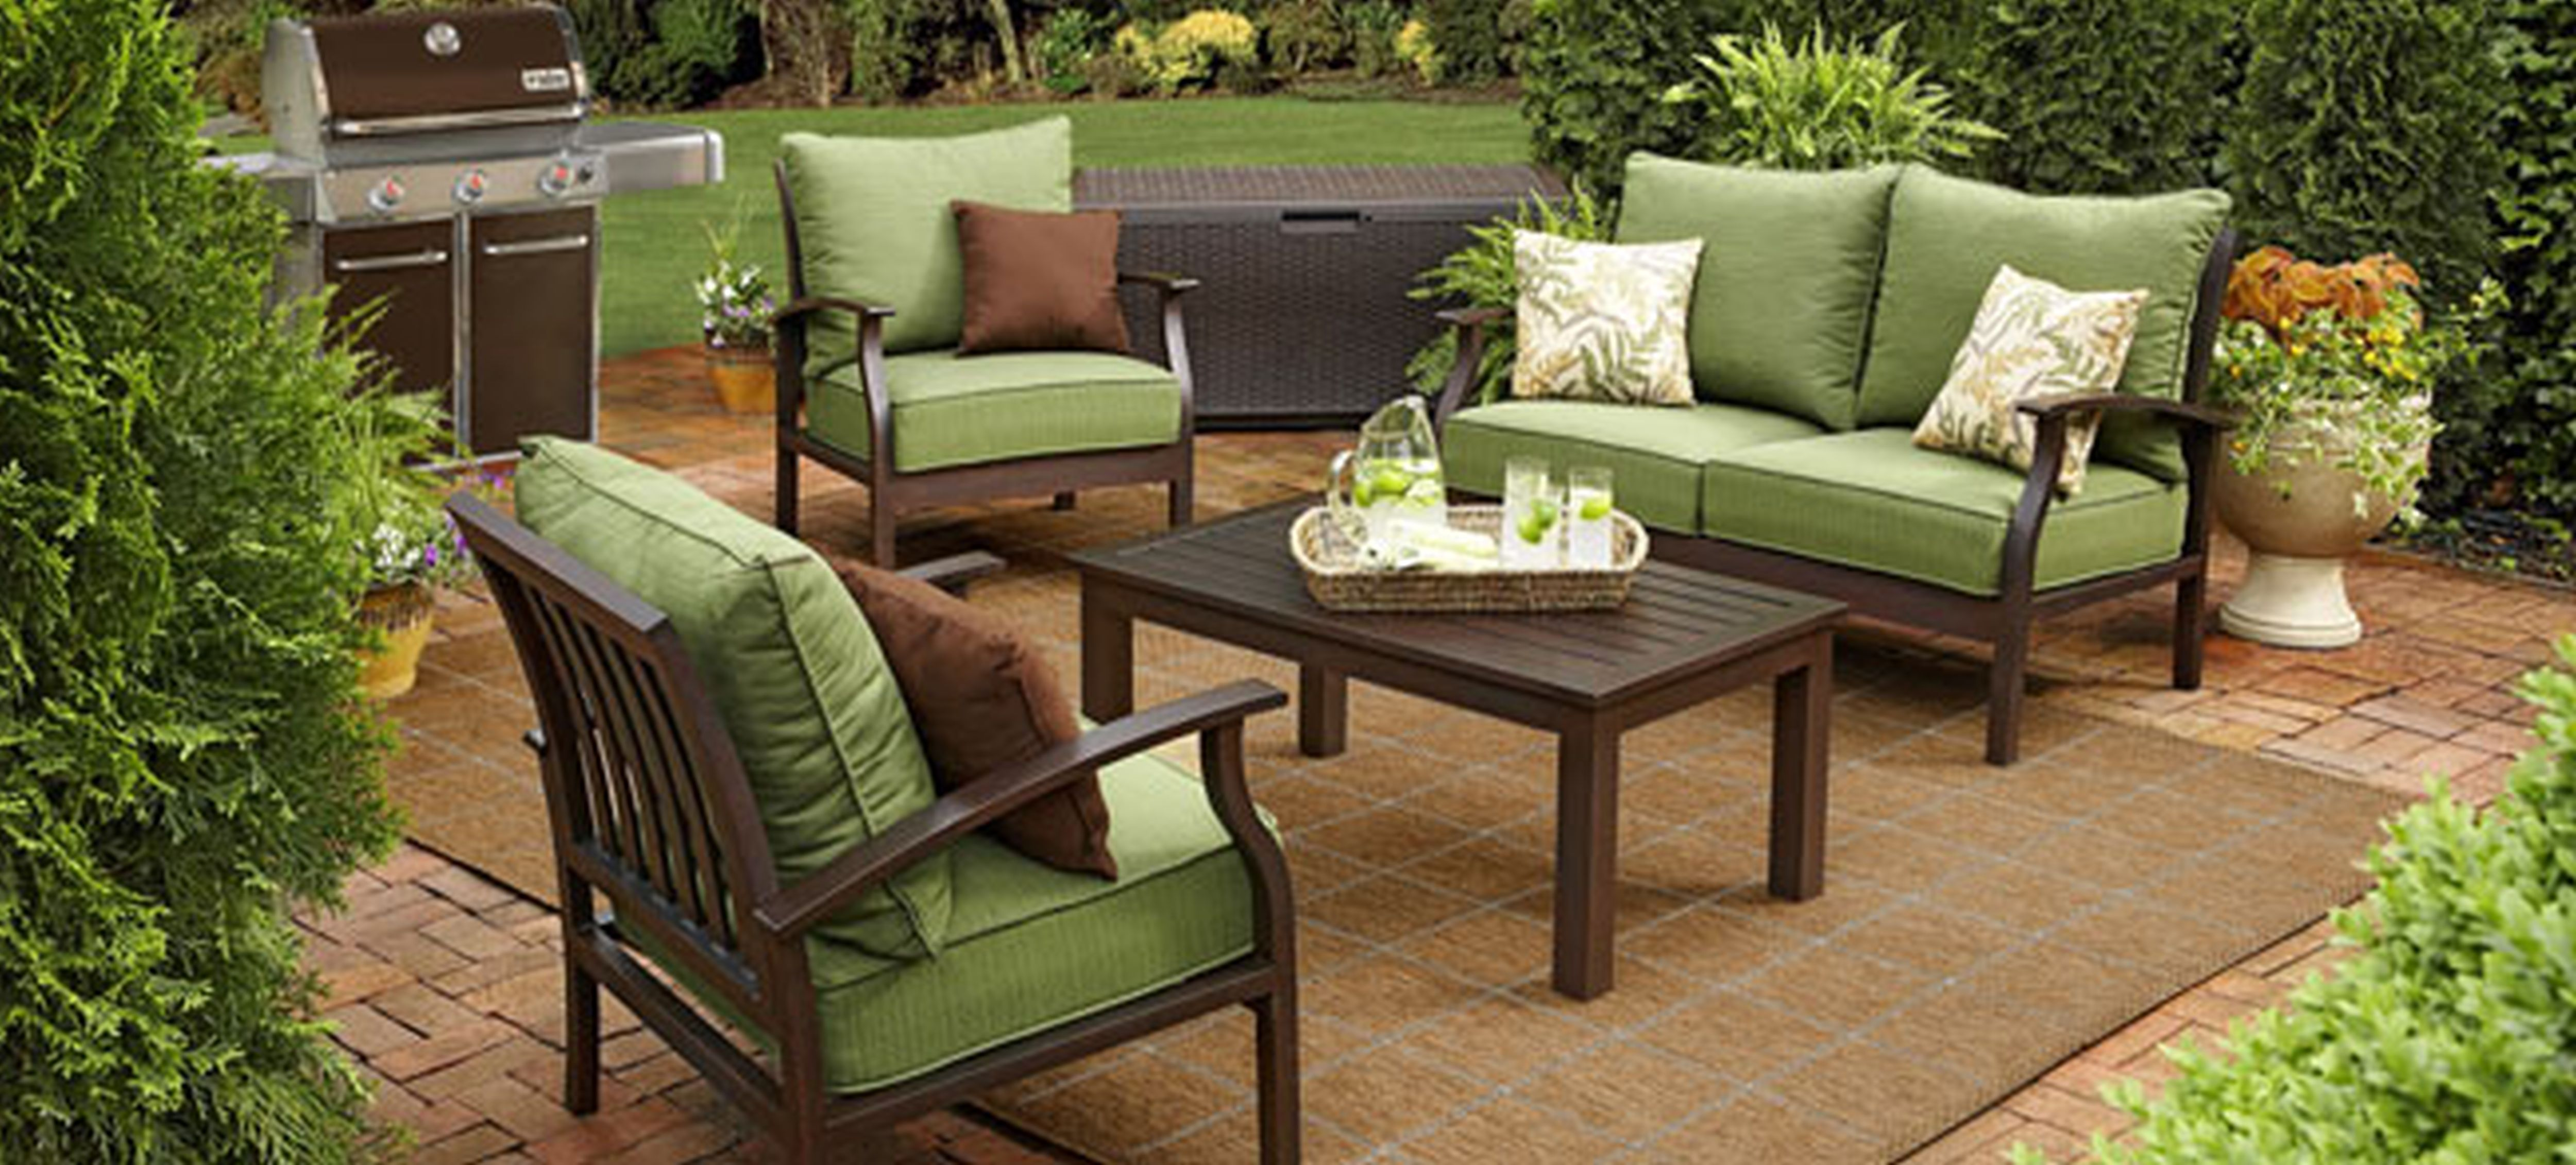 inspirational outdoor lawn furniture patio stools peae cnxconsortium org  cushions TERIVIT